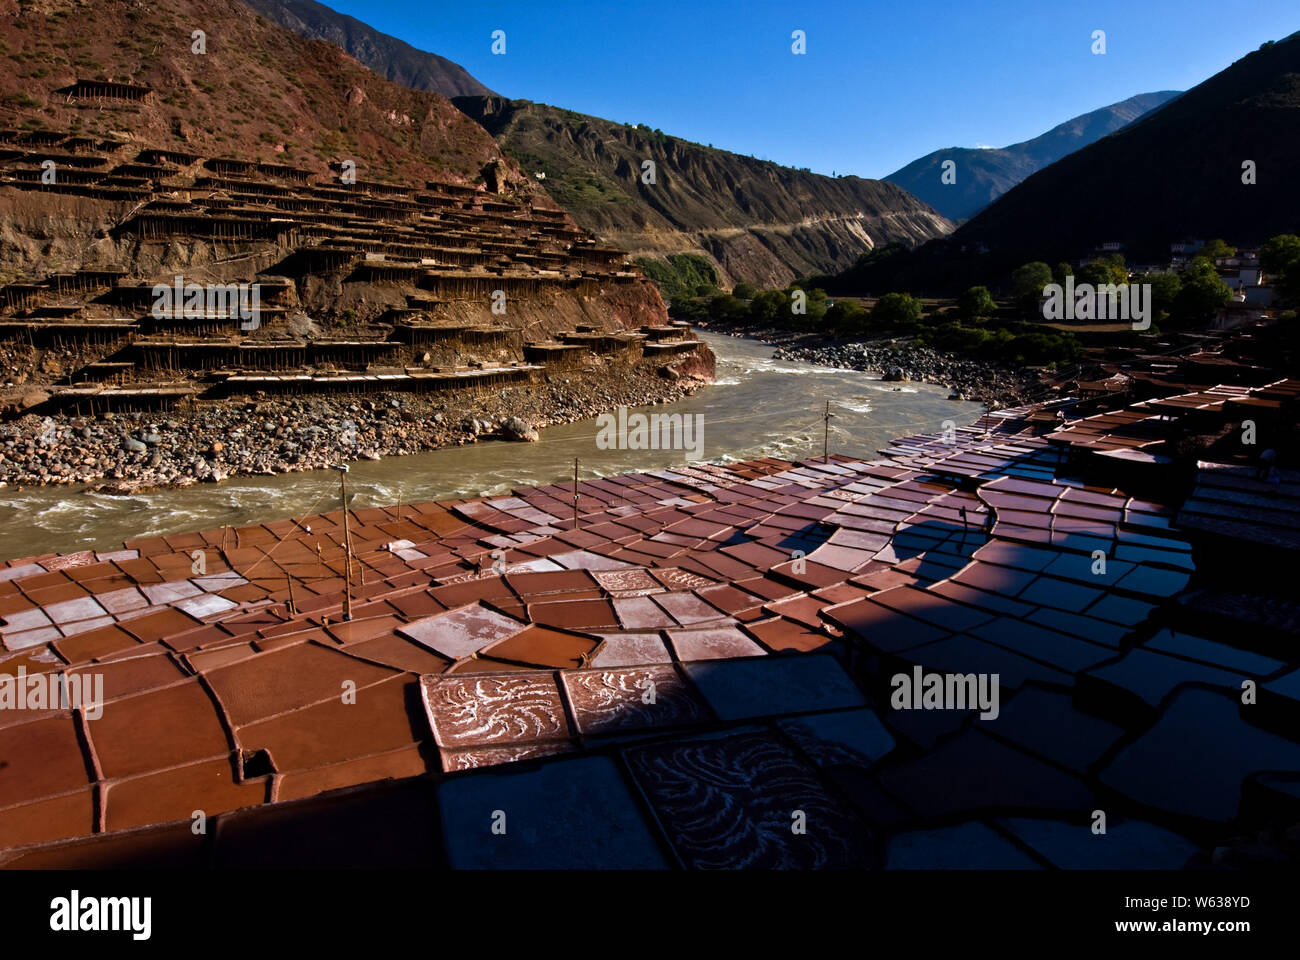 River Valley Auto >> Scenery Of The Mangkang Salt Terraces In The Lancang River